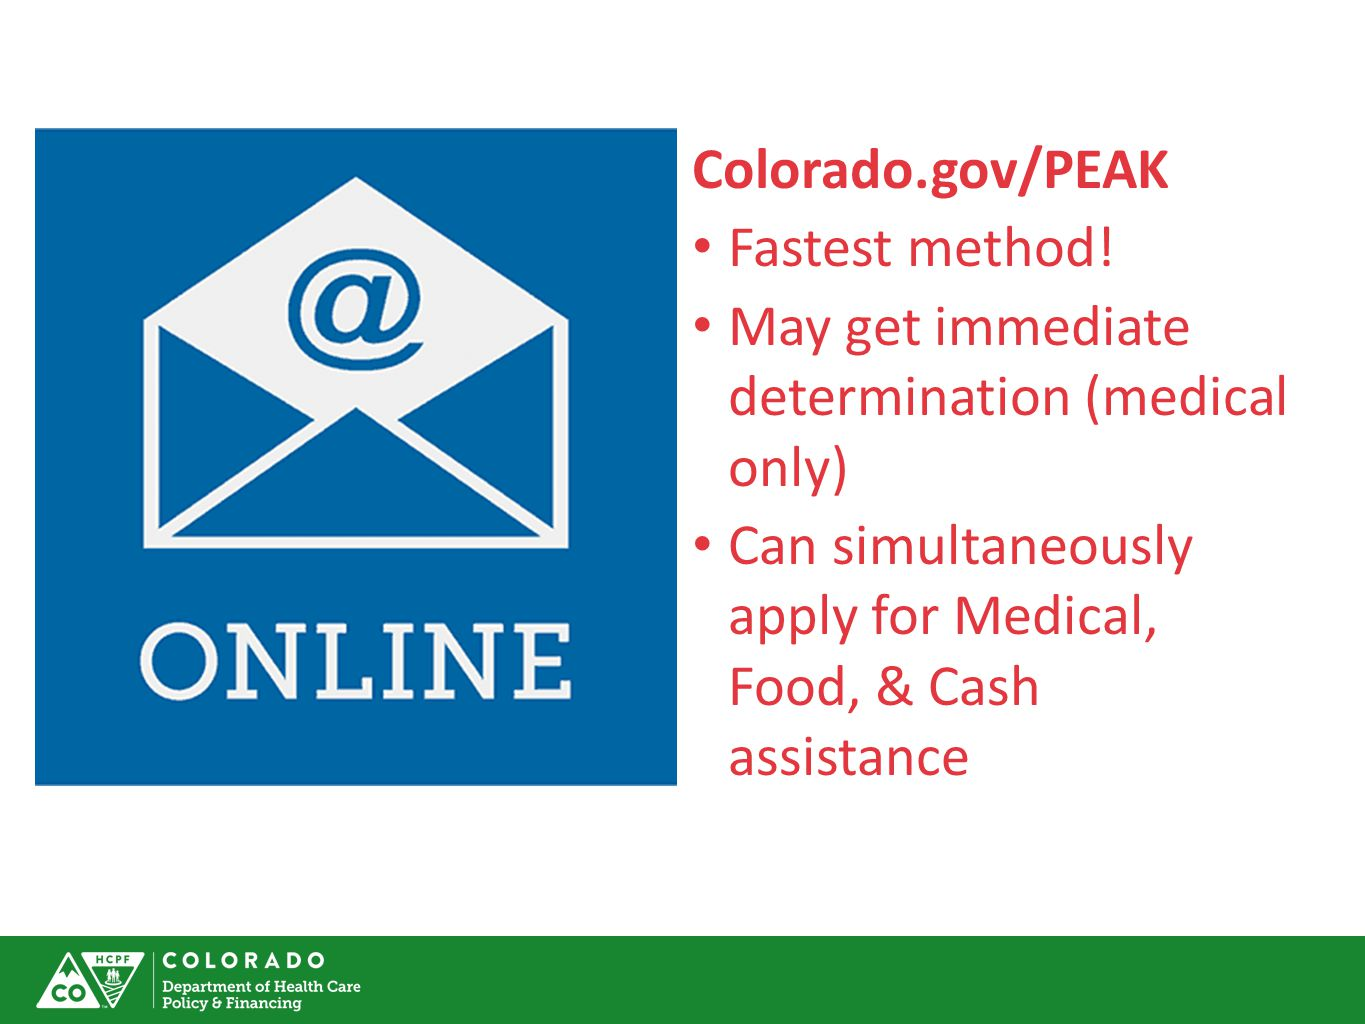 Colorado.gov/PEAK Fastest method! May get immediate determination (medical only) Can simultaneously apply for Medical, Food, & Cash assistance